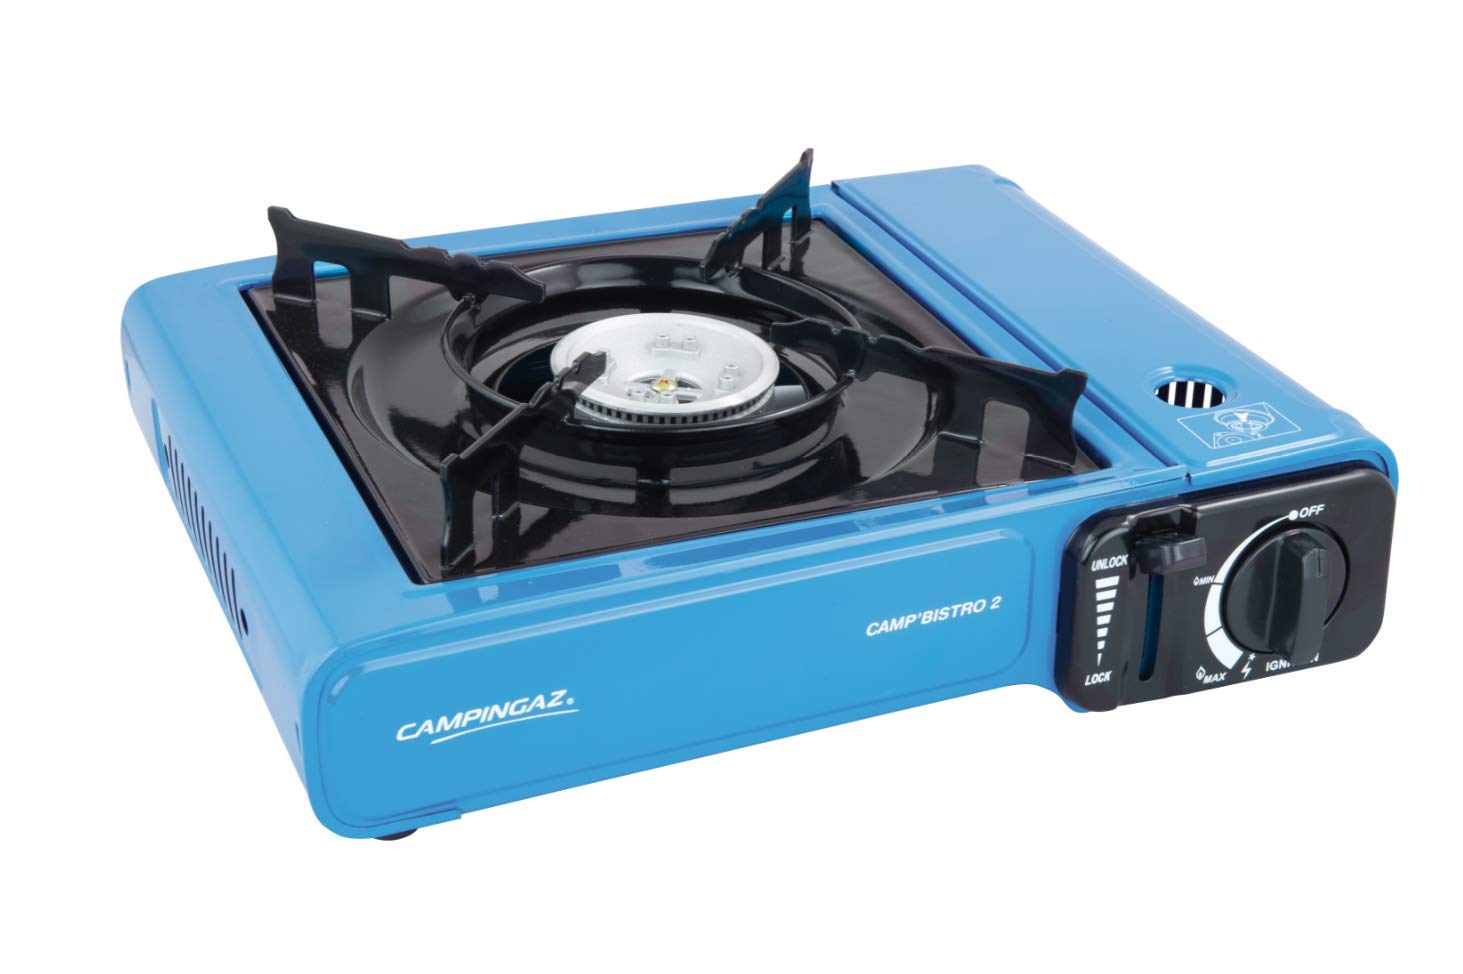 Campingaz Camp Bistro 2, Camping Stove, Portable Gas Cooker for Camping or Festivals, Easy Handling 1